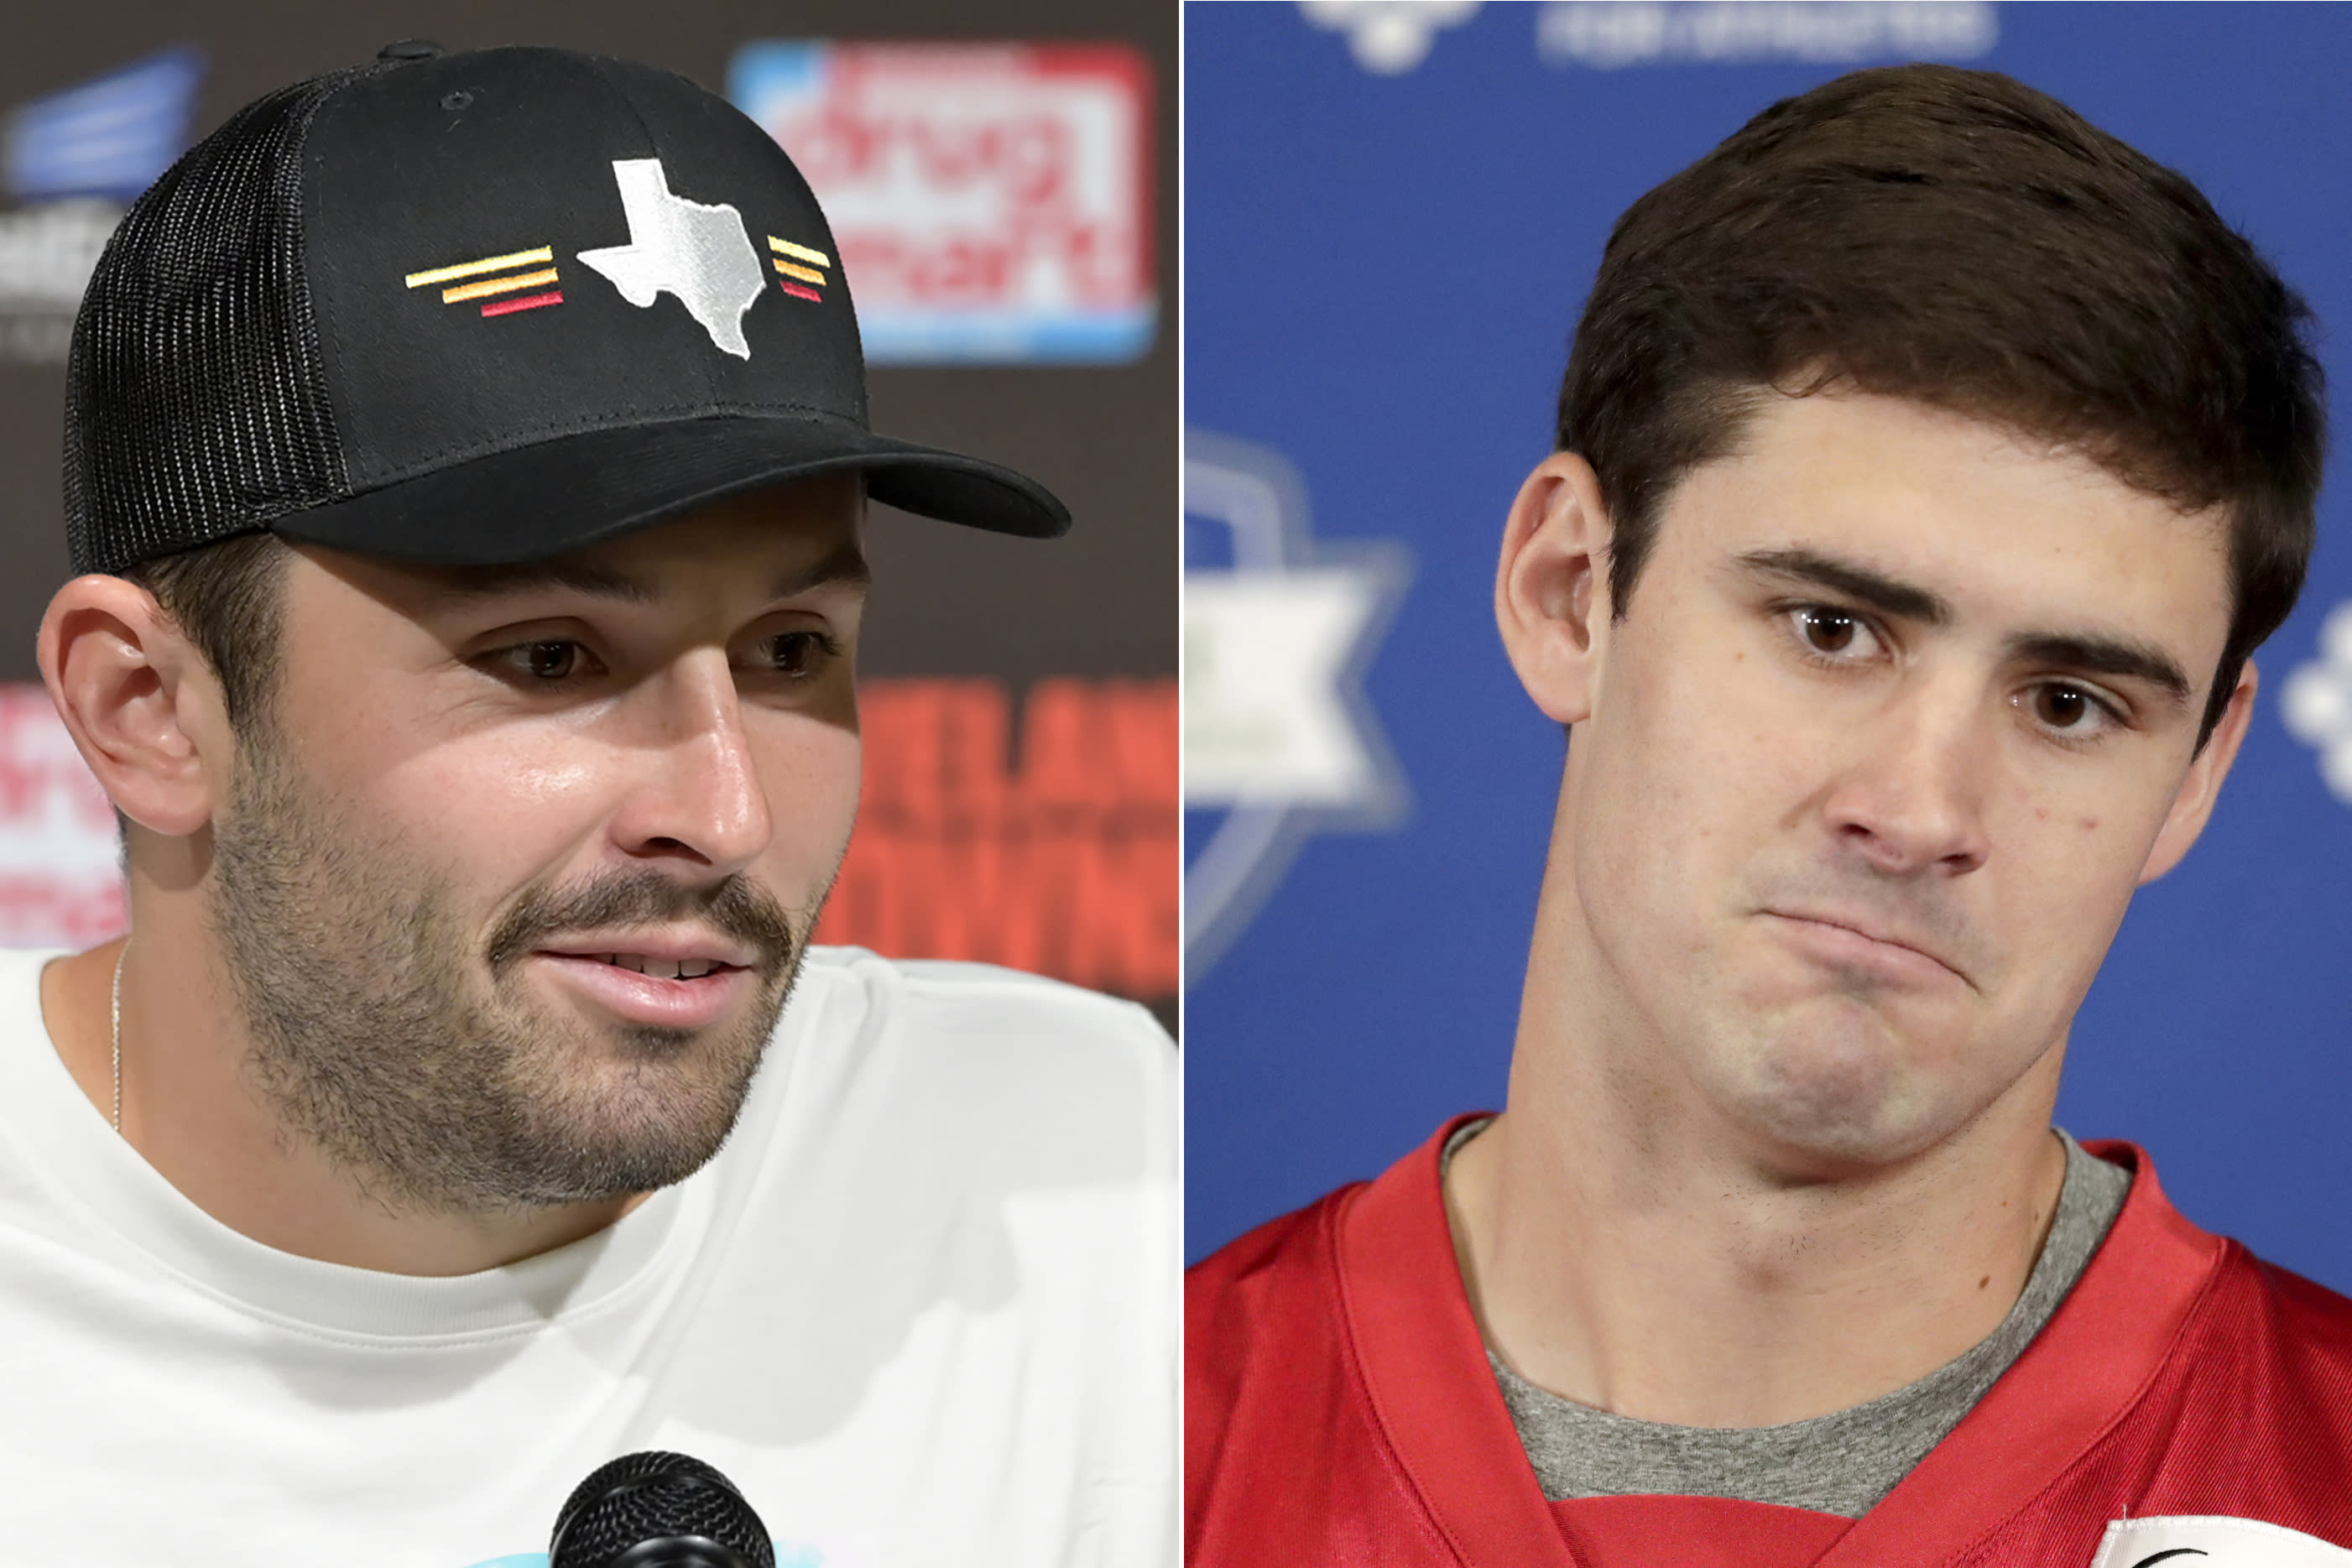 FILE - At left, in an Aug. 8, 2019, file photo, Cleveland Browns quarterback Baker Mayfield answers questions after an NFL preseason football game against the Washington Redskins in Cleveland. At right, in a May 3, 2019, file photo, New York Giants' Daniel Jones talks to reporters during NFL football rookie camp in East Rutherford, N.J. Mayfield said he reached out to rookie QB Jones after making some harsh comments about the first-round pick in an interview. Mayfield admitted Wednesday, Aug. 21, 2019, that he told GQ he was surprised the New York Giants selected Jones, but that he didnt mean any disrespect toward Jones and that some of his comments were taken out of context. (AP Photo/File)